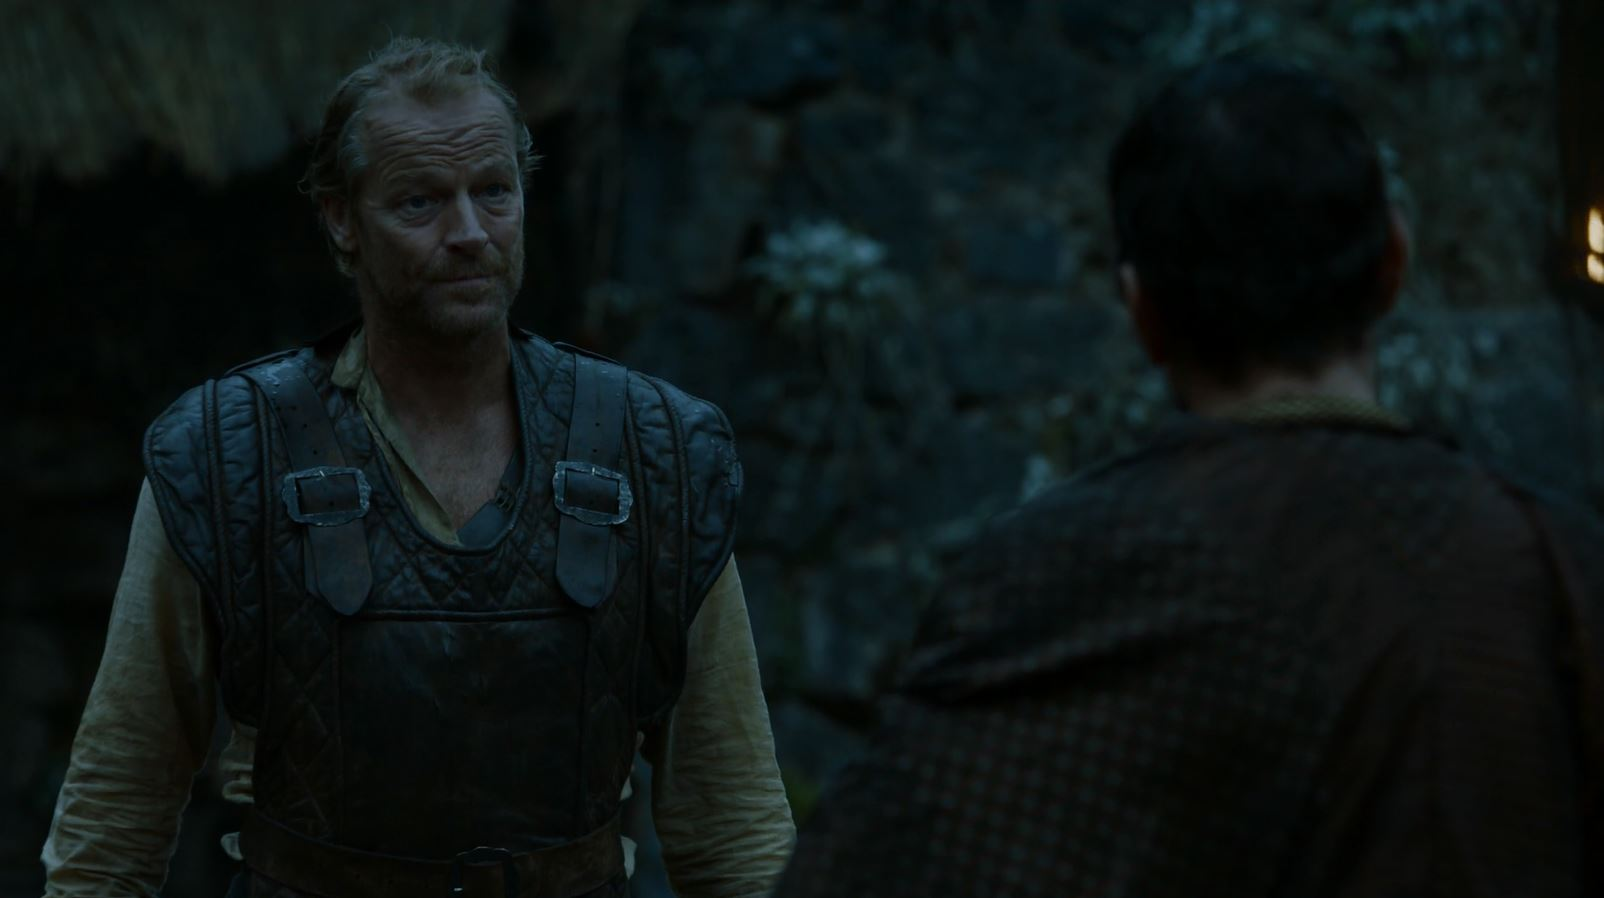 Ser Jorah joins the fighting pits. Game of Thrones S5Ep8 Hardhome Review